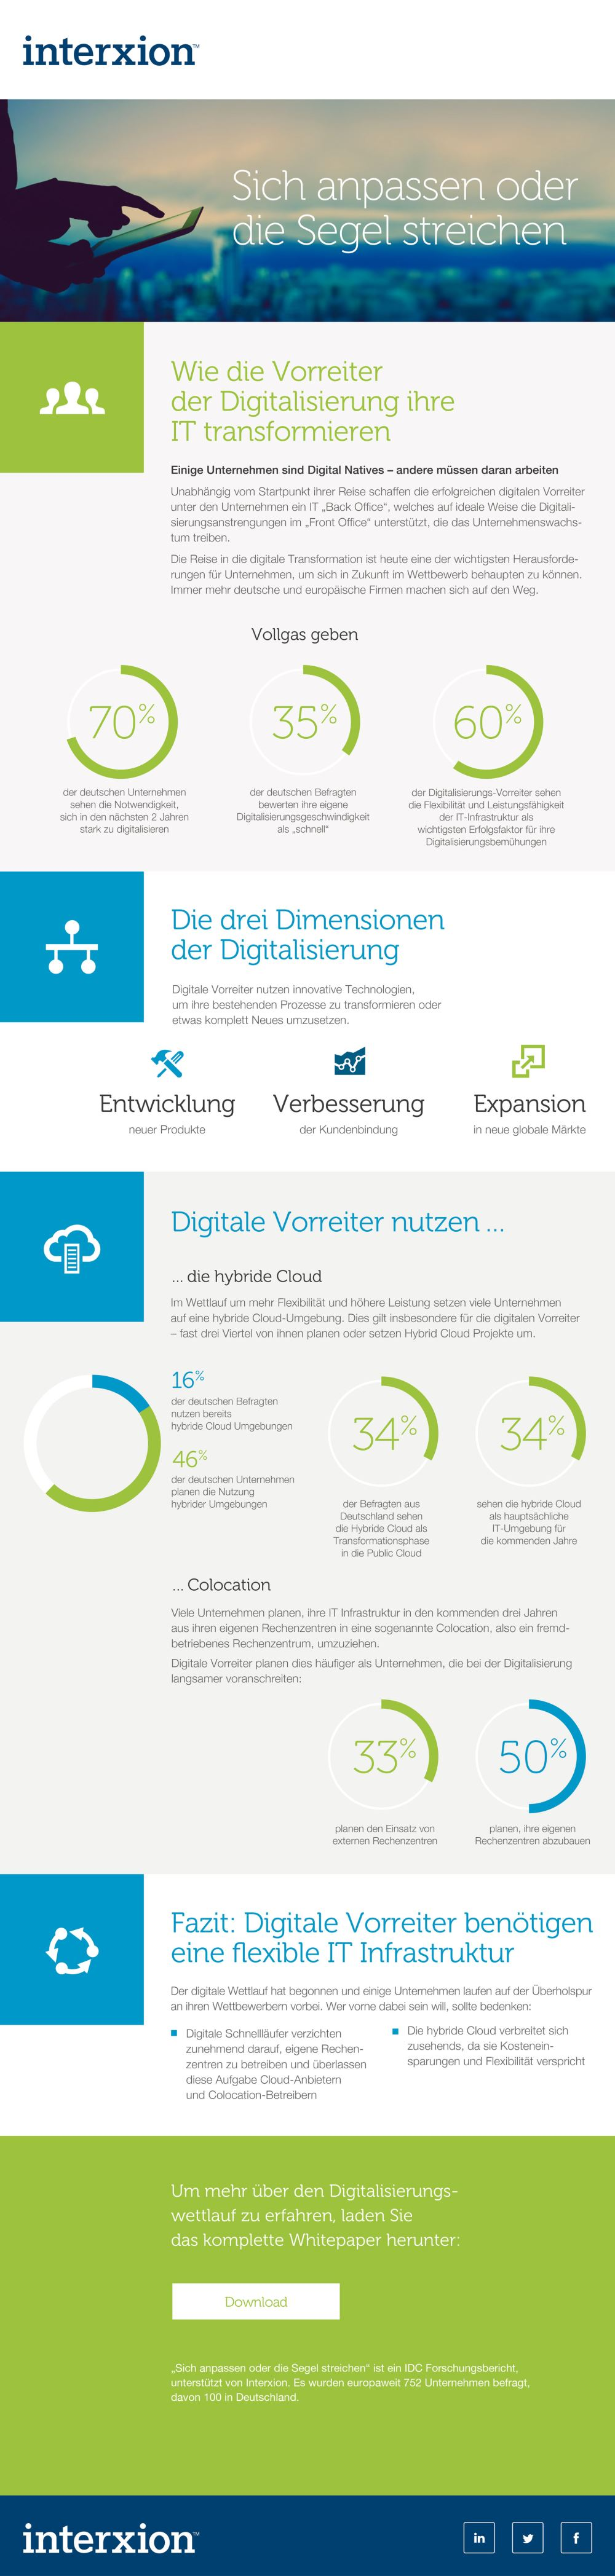 Hybrid Cloud - Studie Interxion